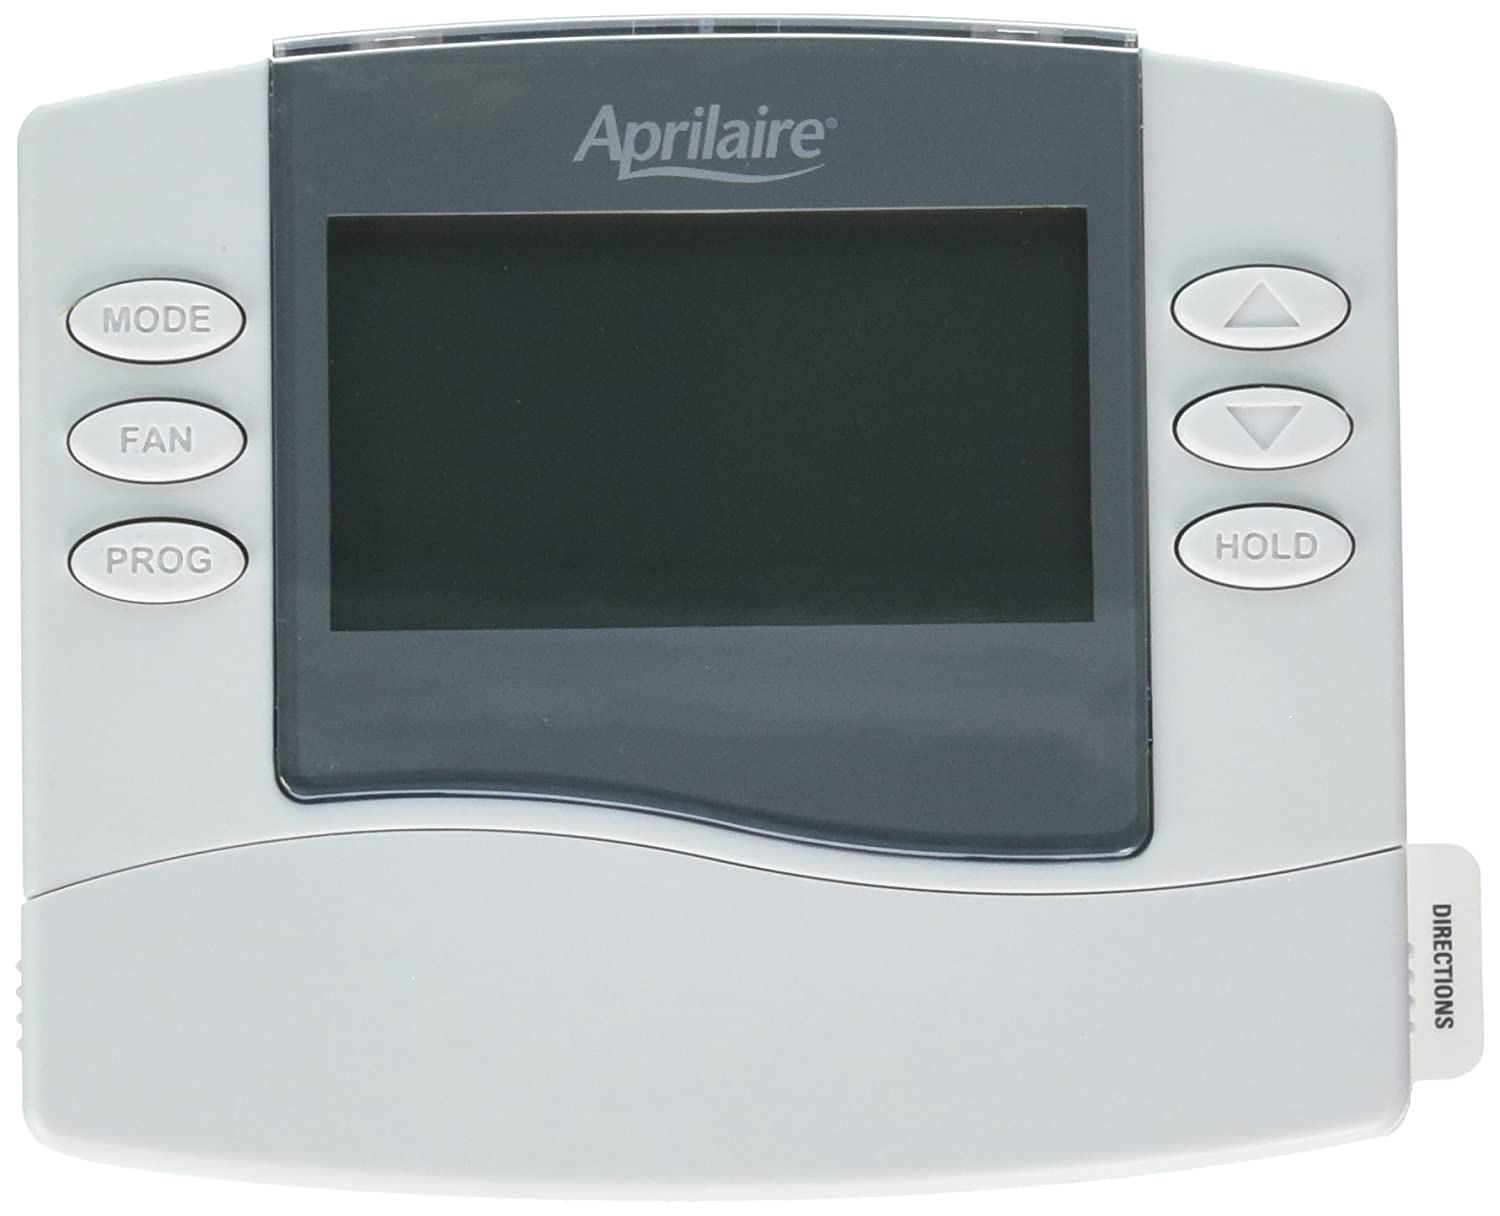 Aprilaire 8463 Thermostat, Programmable Dual Powered ...